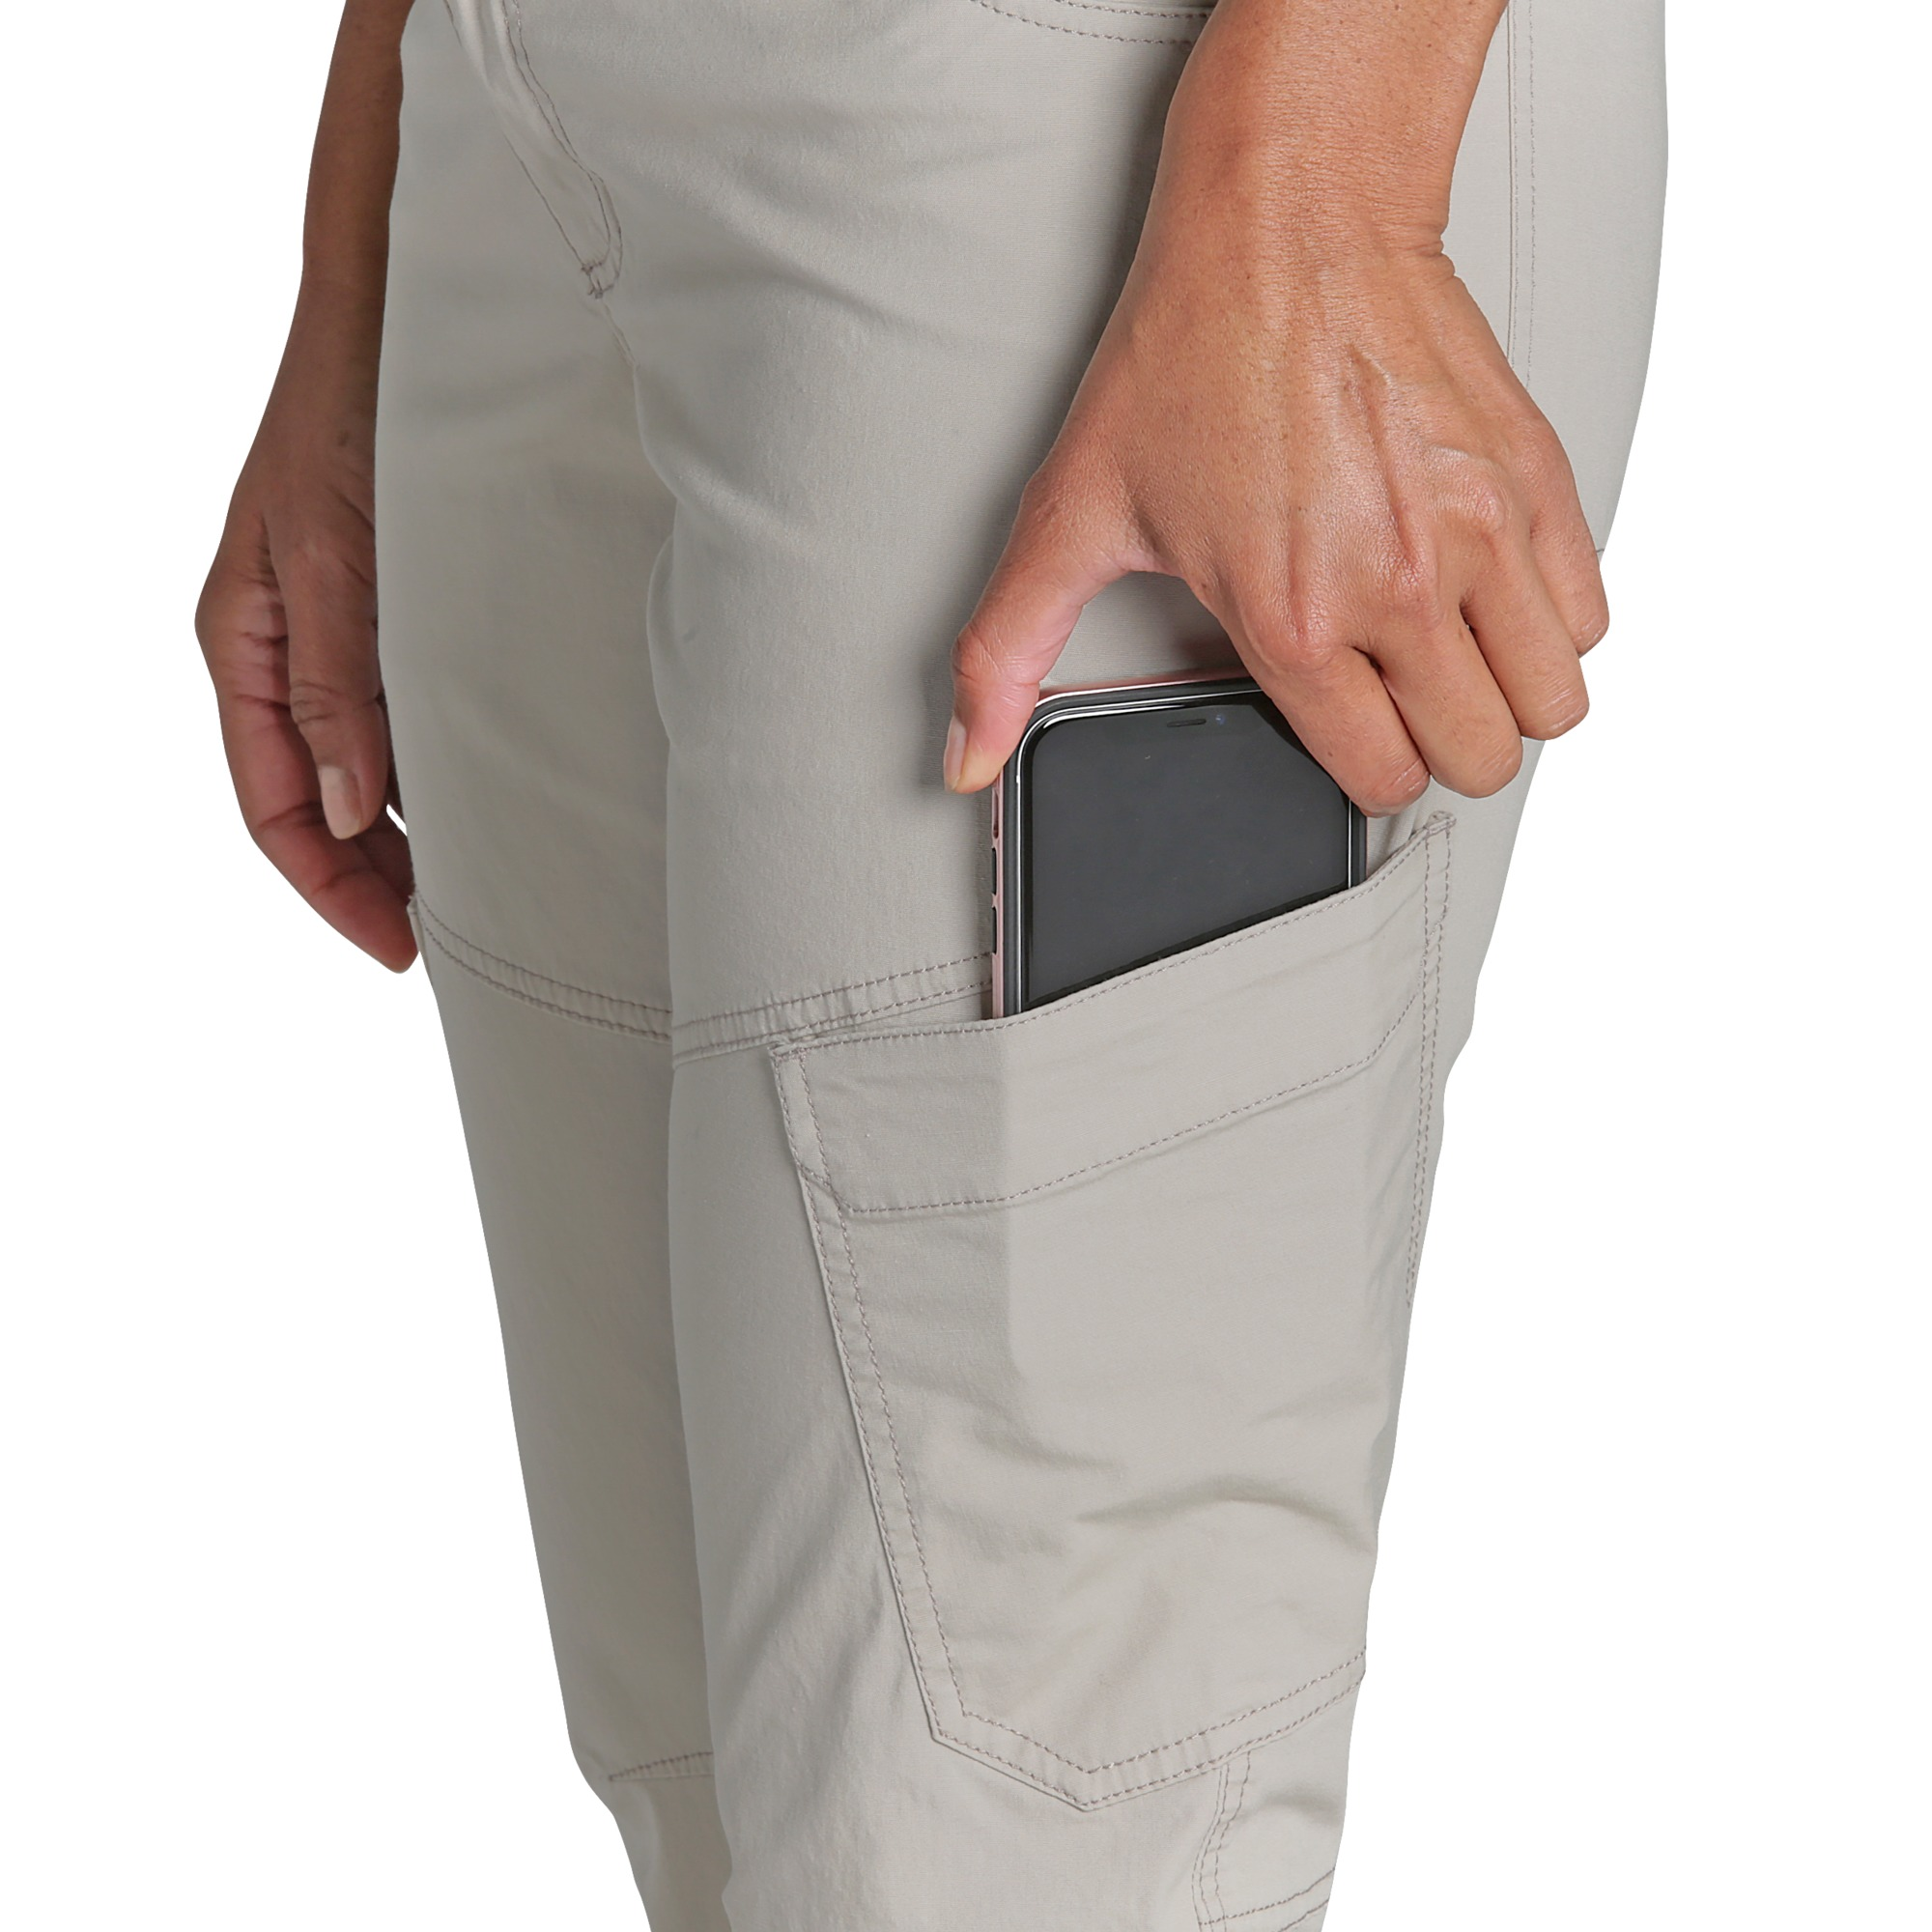 fdca4135498 Women's Wadi Rum Pants - washed peacock | Outdoor Research